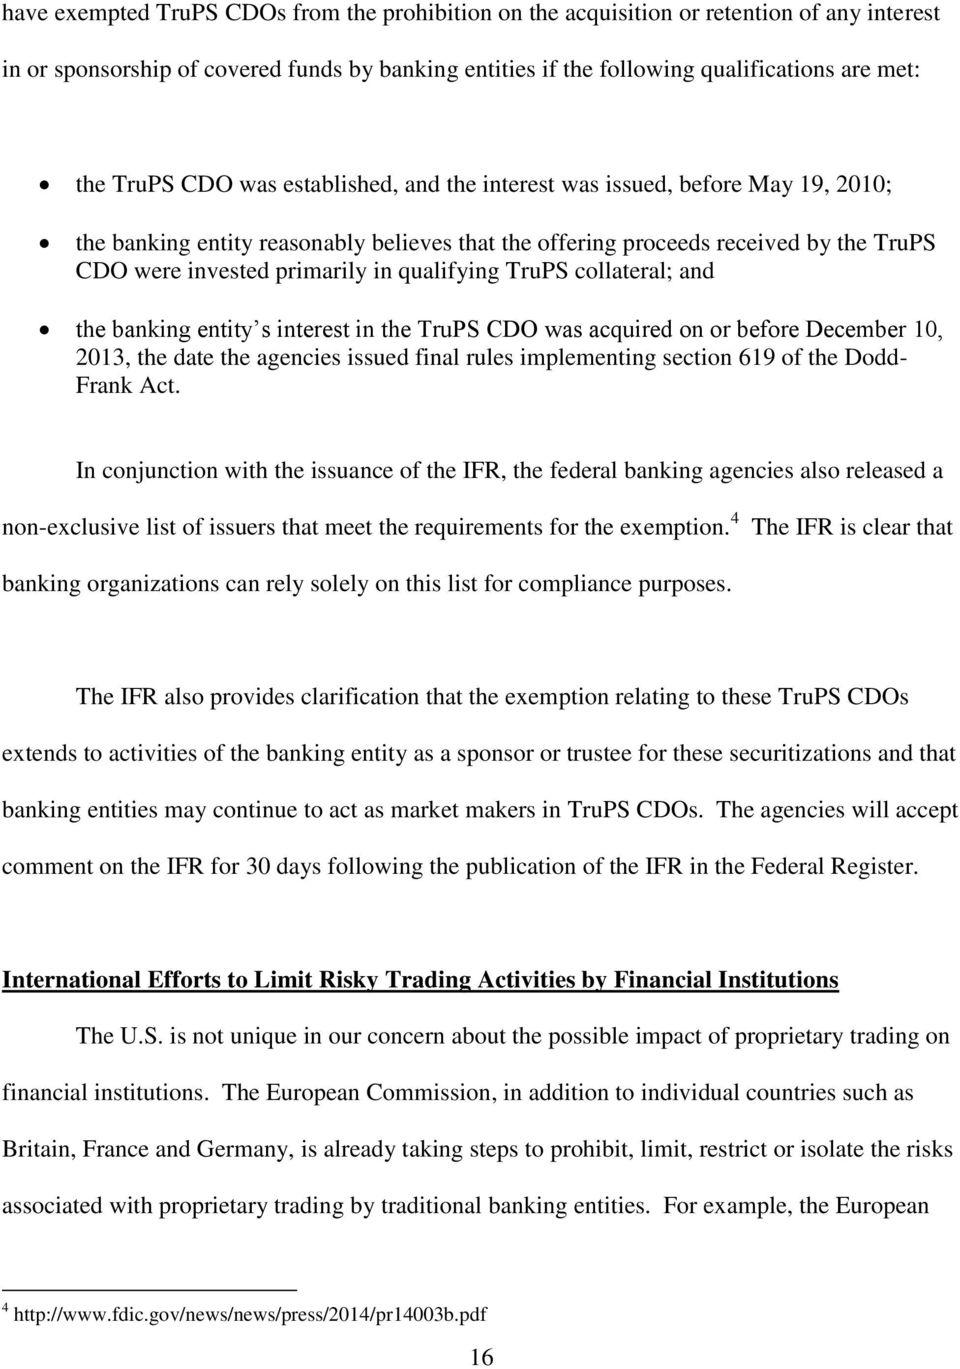 qualifying TruPS collateral; and the banking entity s interest in the TruPS CDO was acquired on or before December 10, 2013, the date the agencies issued final rules implementing section 619 of the